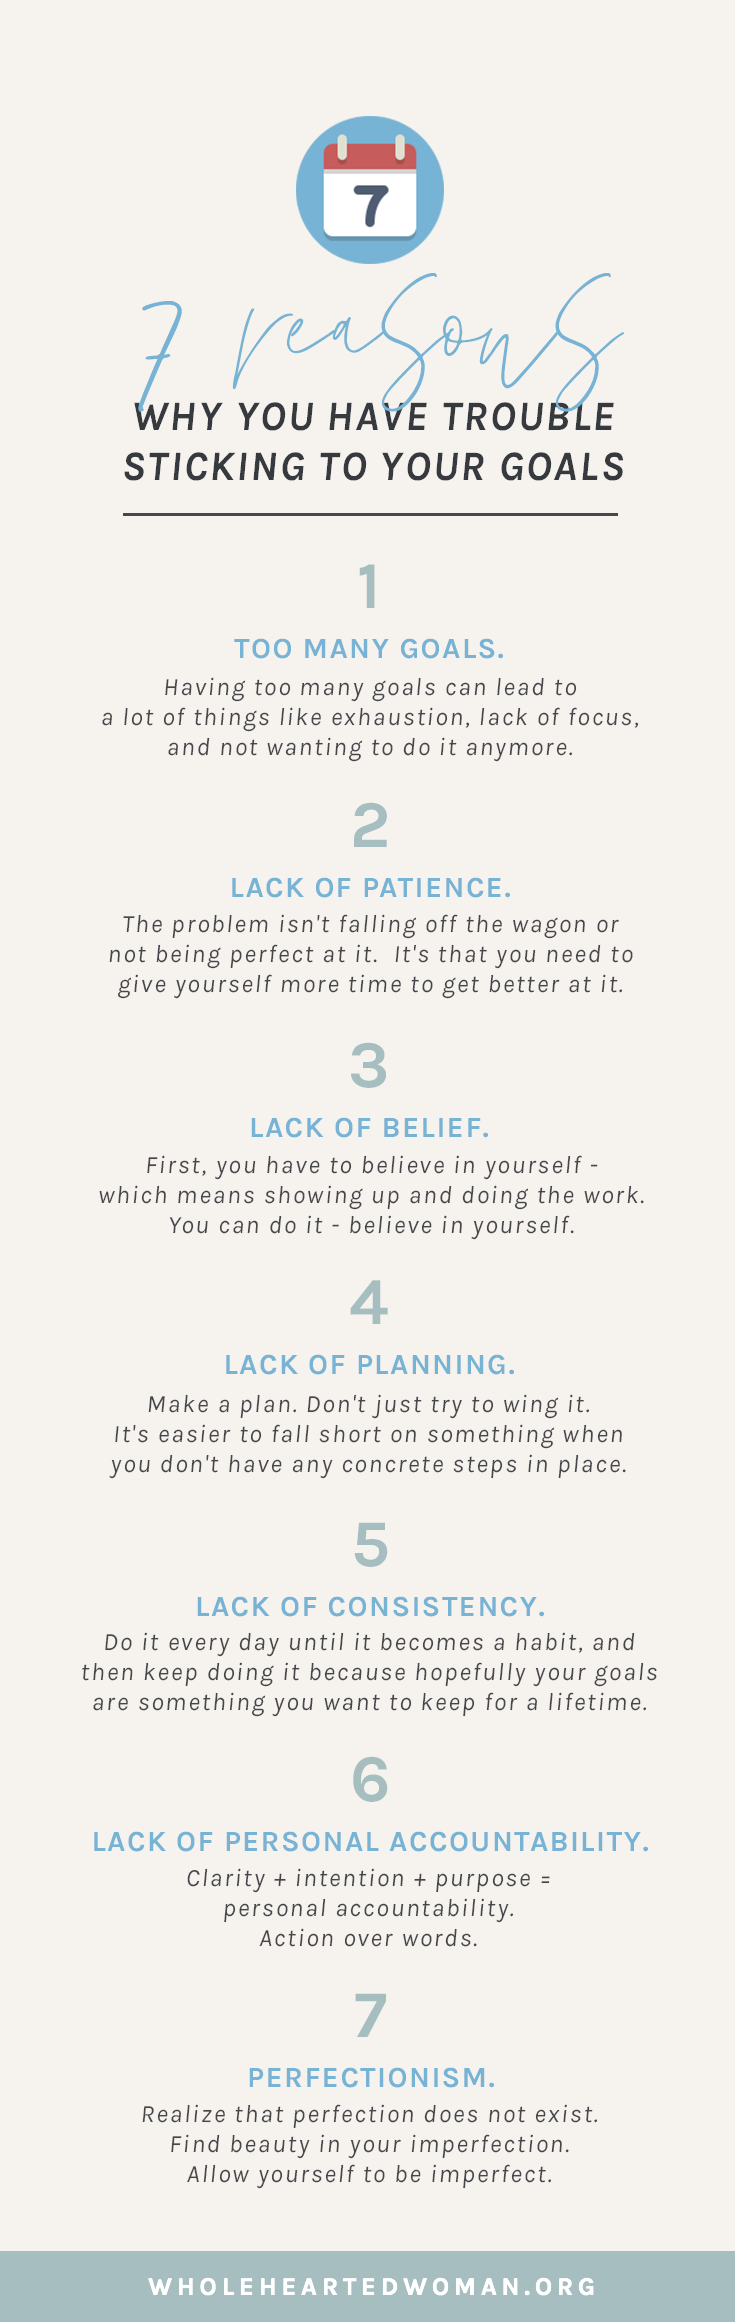 7 Reasons Why You Have Trouble Sticking To Your Goals | How To Stick To Your Goals | Goal Setting and SMART Goals | How To Be More Productive | Life Advice For Millennials | Self-Awareness | Personal Growth & Development | Mindfulness | Mindset | Wholehearted Woman | #selfdiscovery | #personalgrowth | #selfhelp | #selfawareness | #gratitude | #selflove | #goals | #goalsetting | #productivity